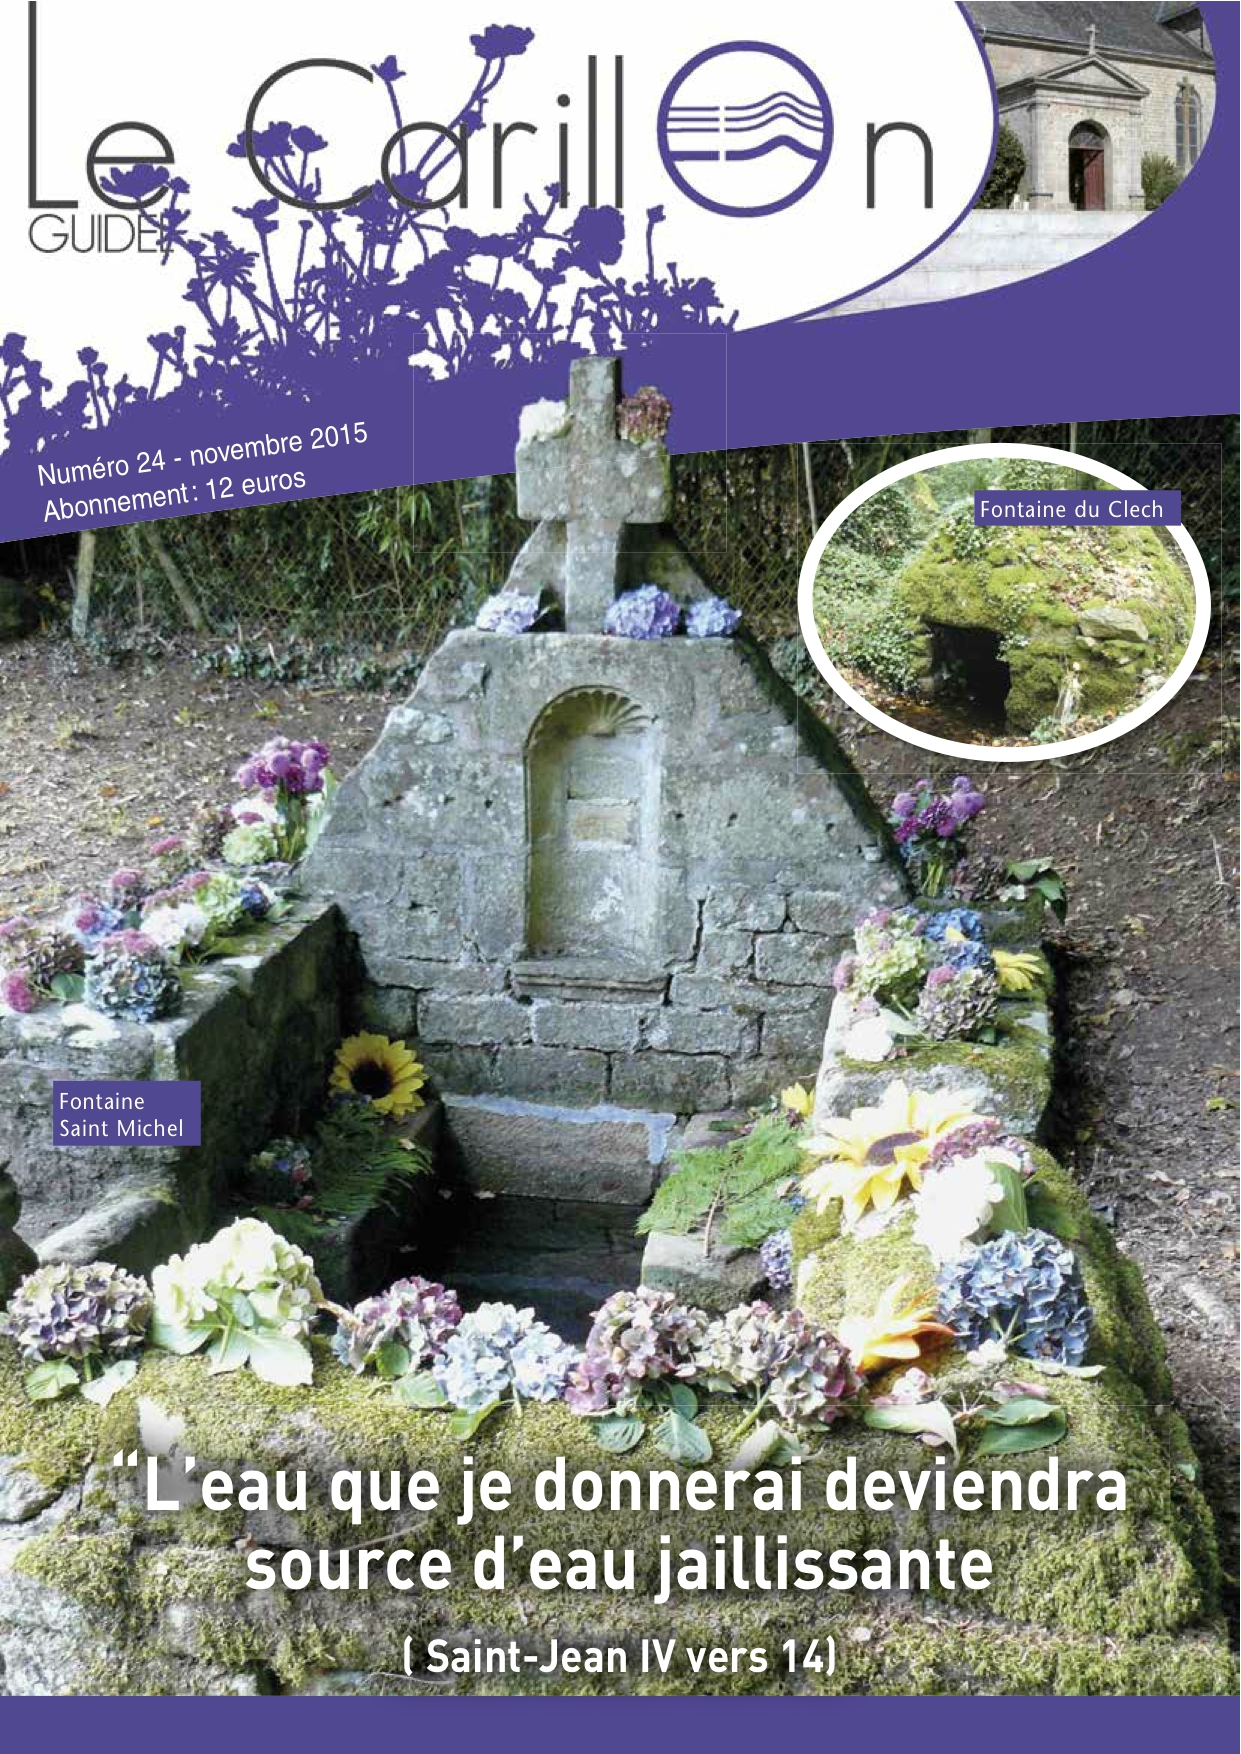 LE CARILLON n° 24 - nov 2015